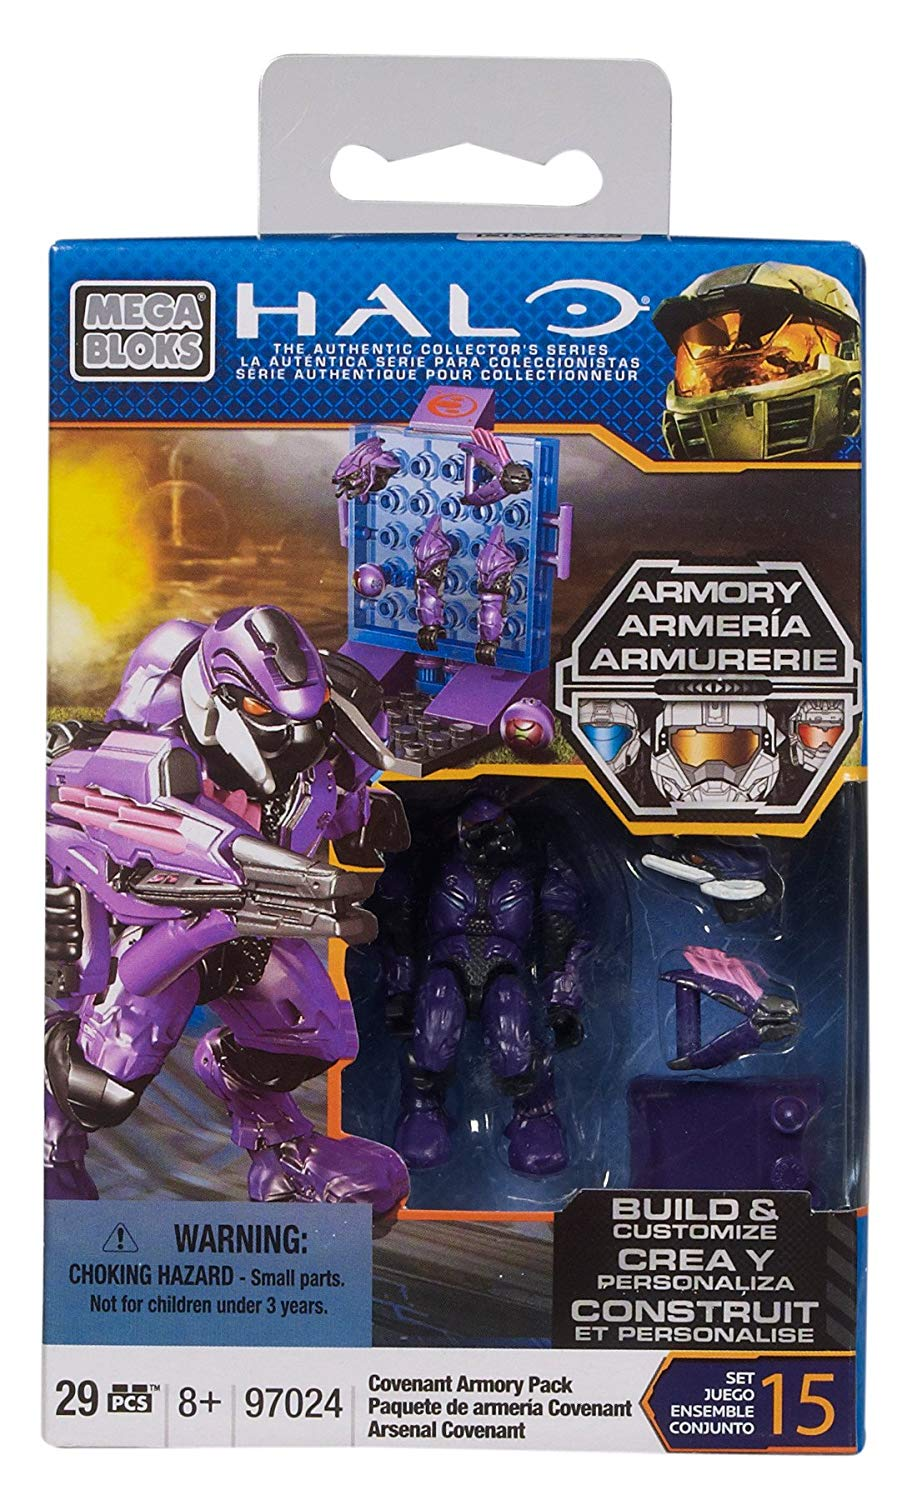 Halo Mega Bloks Covenant Armory Pack officially licensed Halo Mega Bloks product at B.A. Toys.